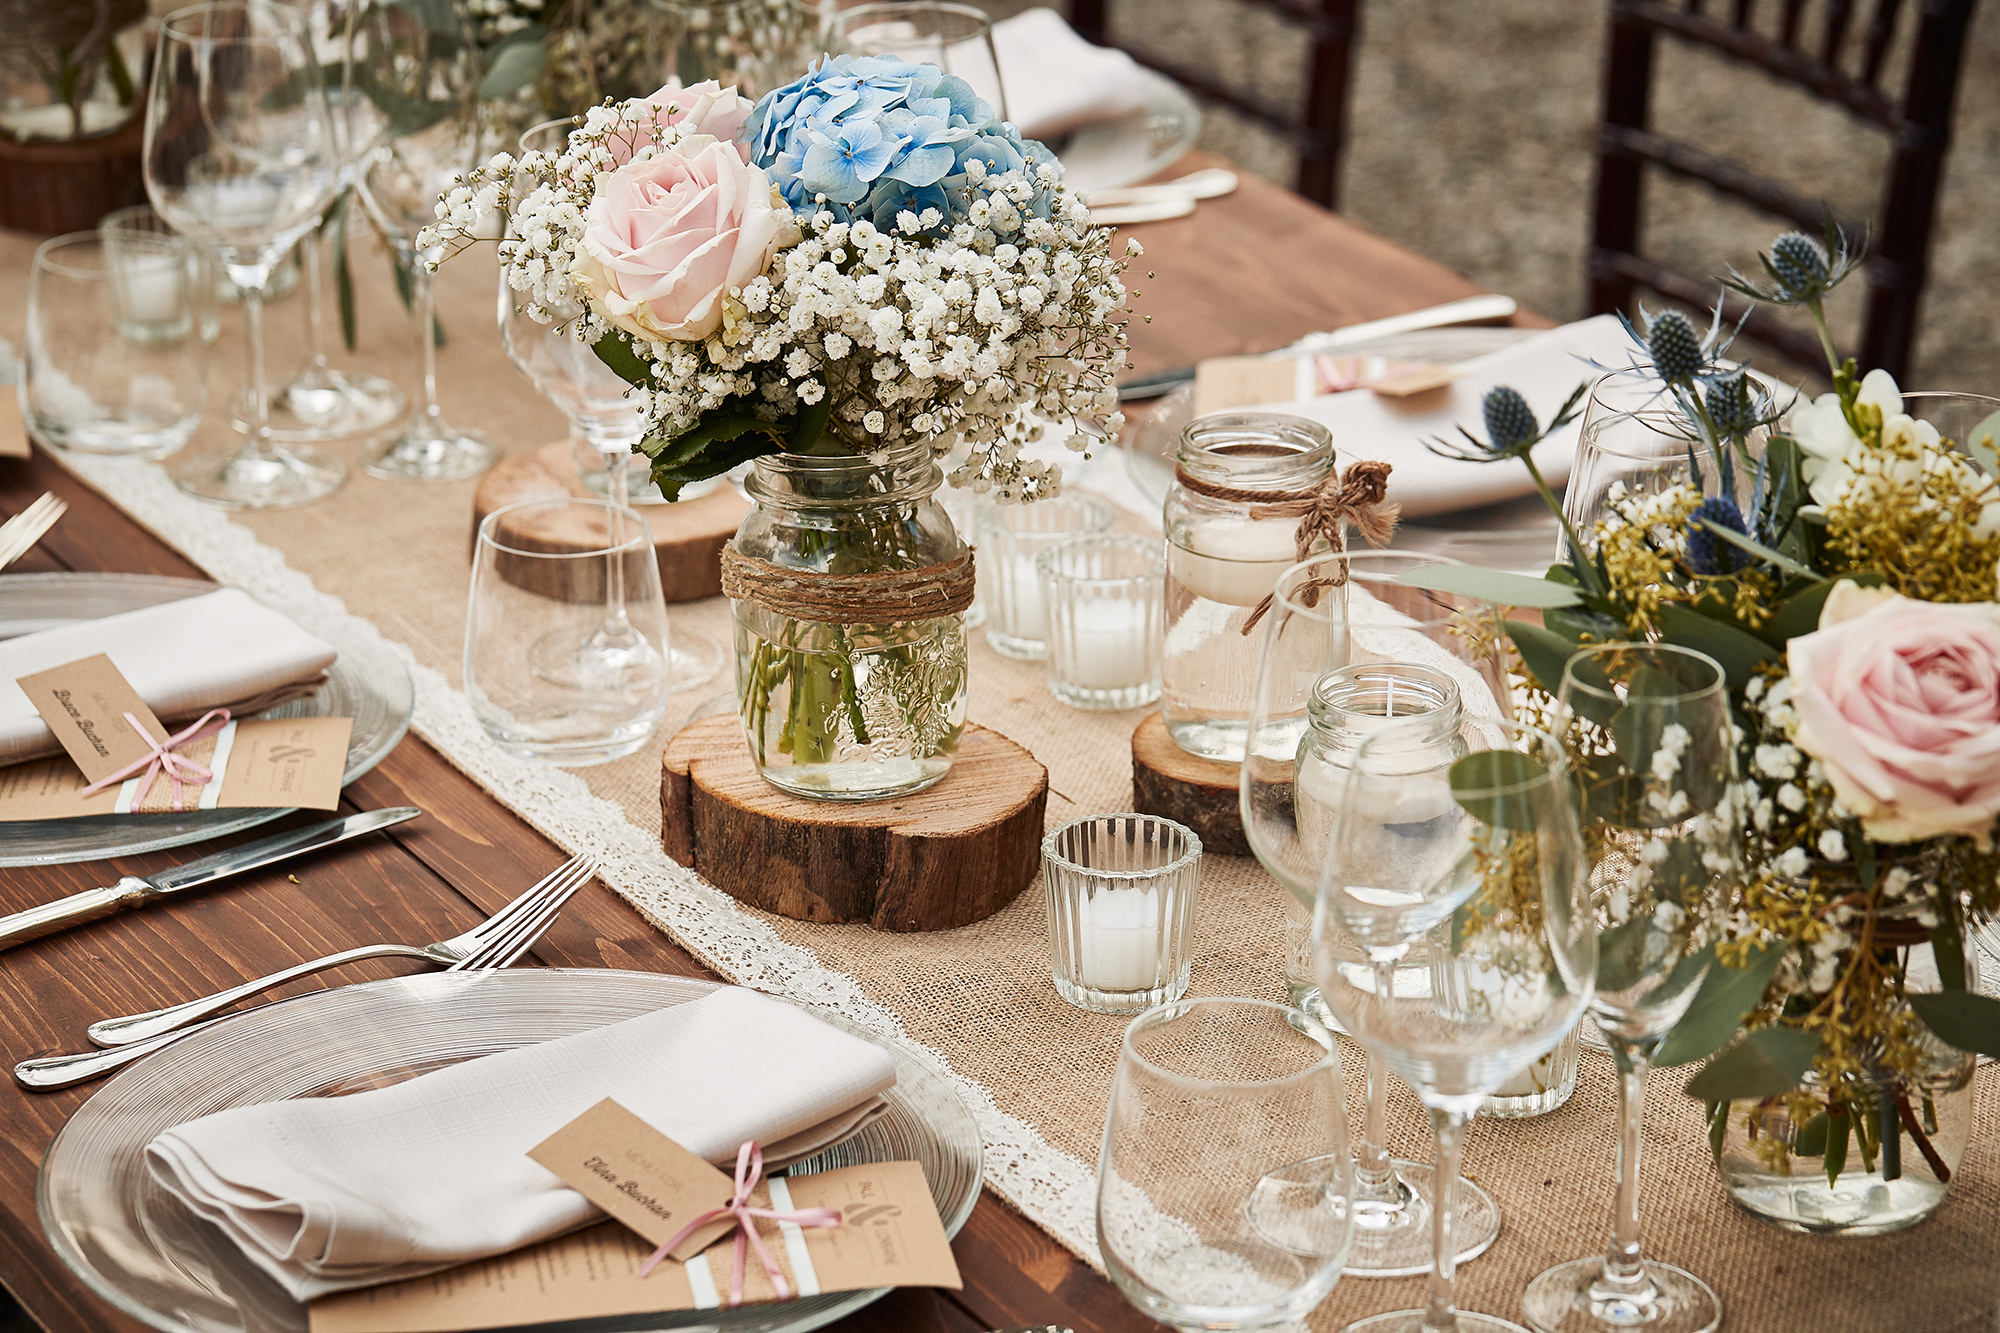 Name Tags And A Scent Of Tuscan Herbs Add Small Bottle Limoncello Or Some Local Olive Oil As Wedding Favour Your Table Is Treat For The